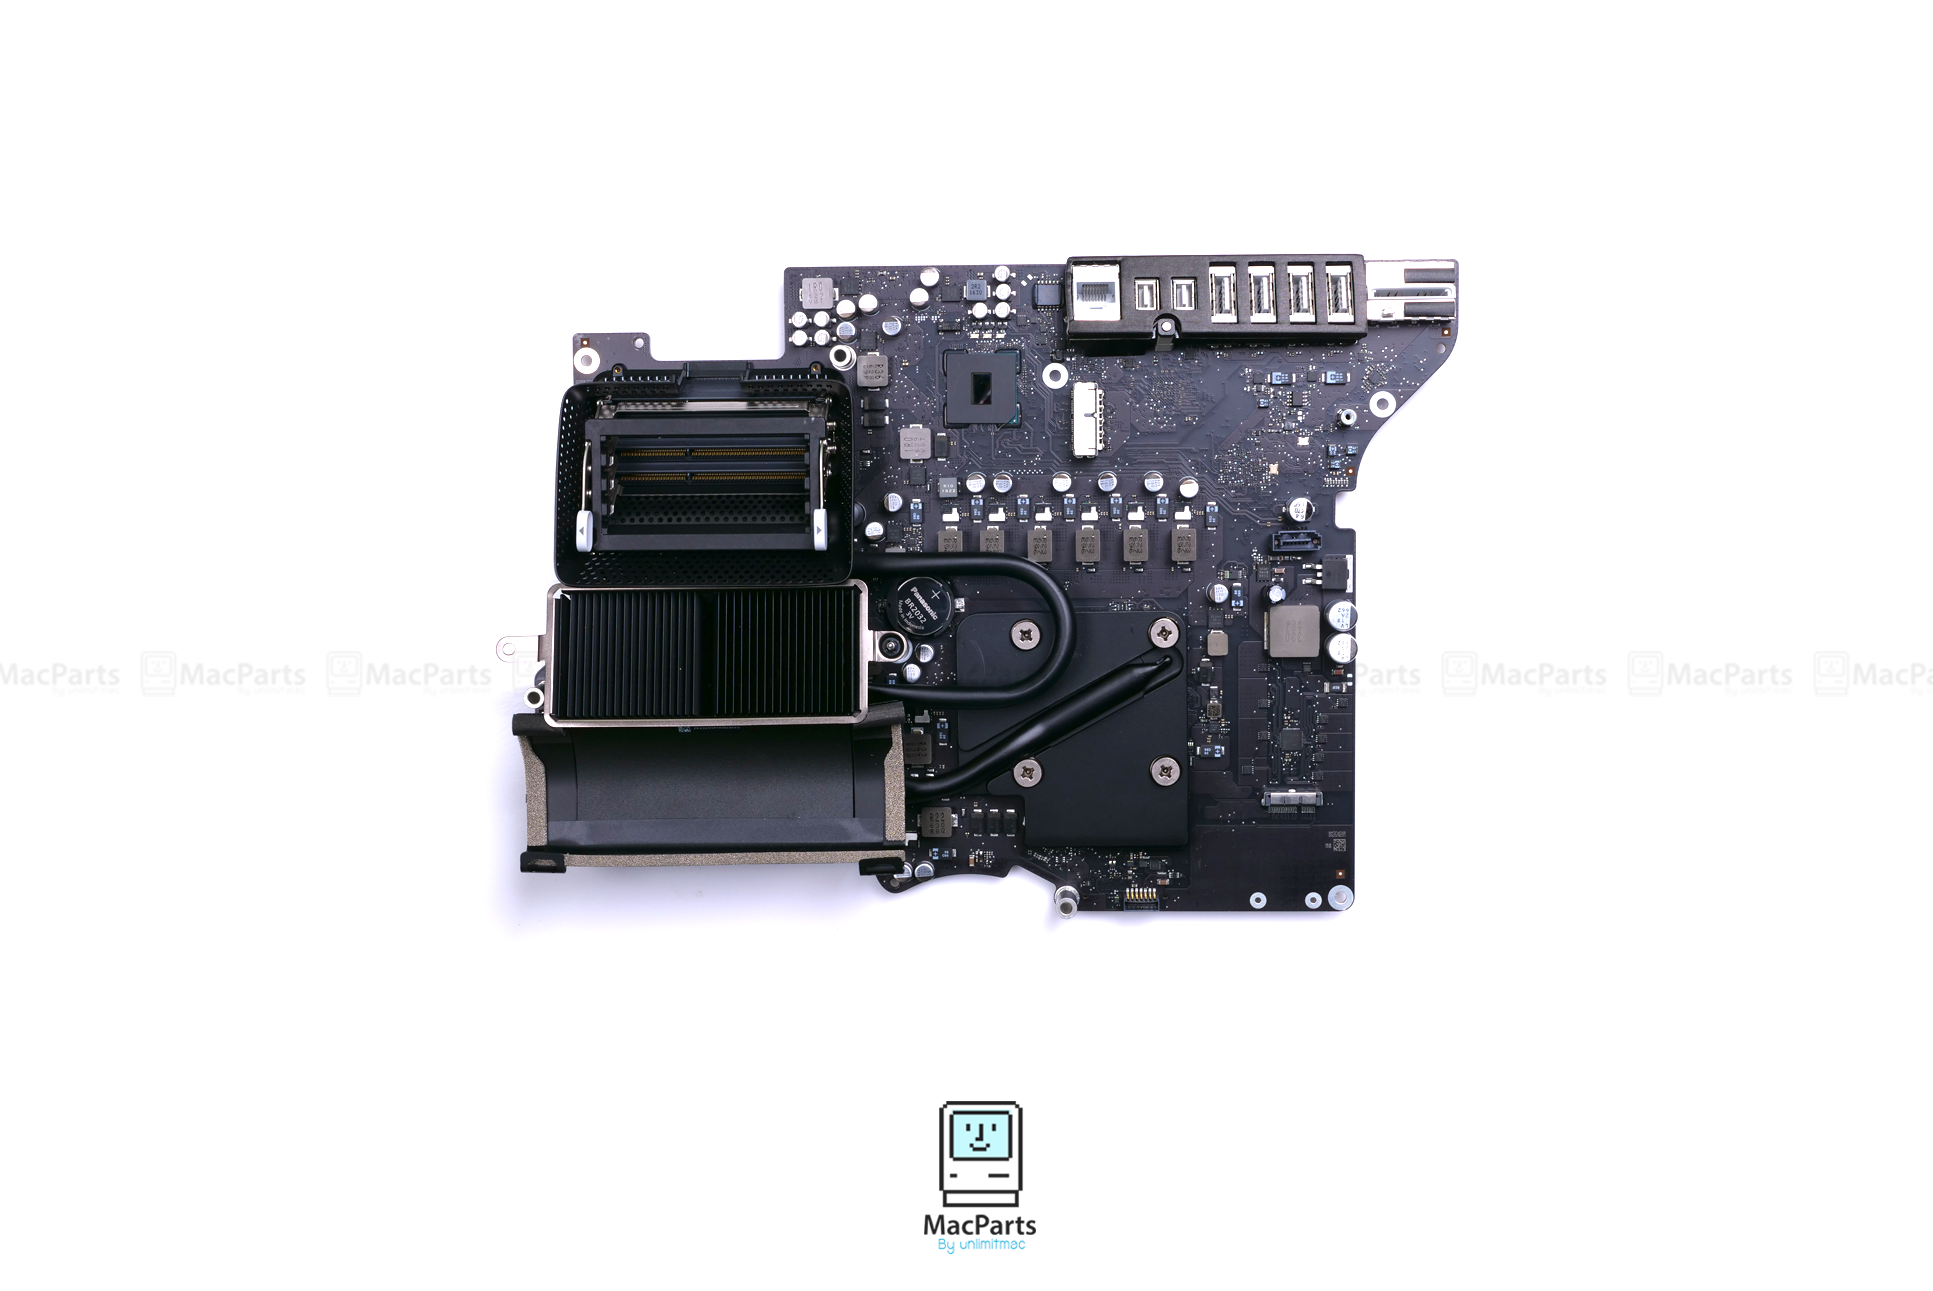 661-03175 MLB, 3.3GHz, Quad Core, 2GB, i5 iMac (Retina 5K, 27-inch, Late 2015) NO CPU